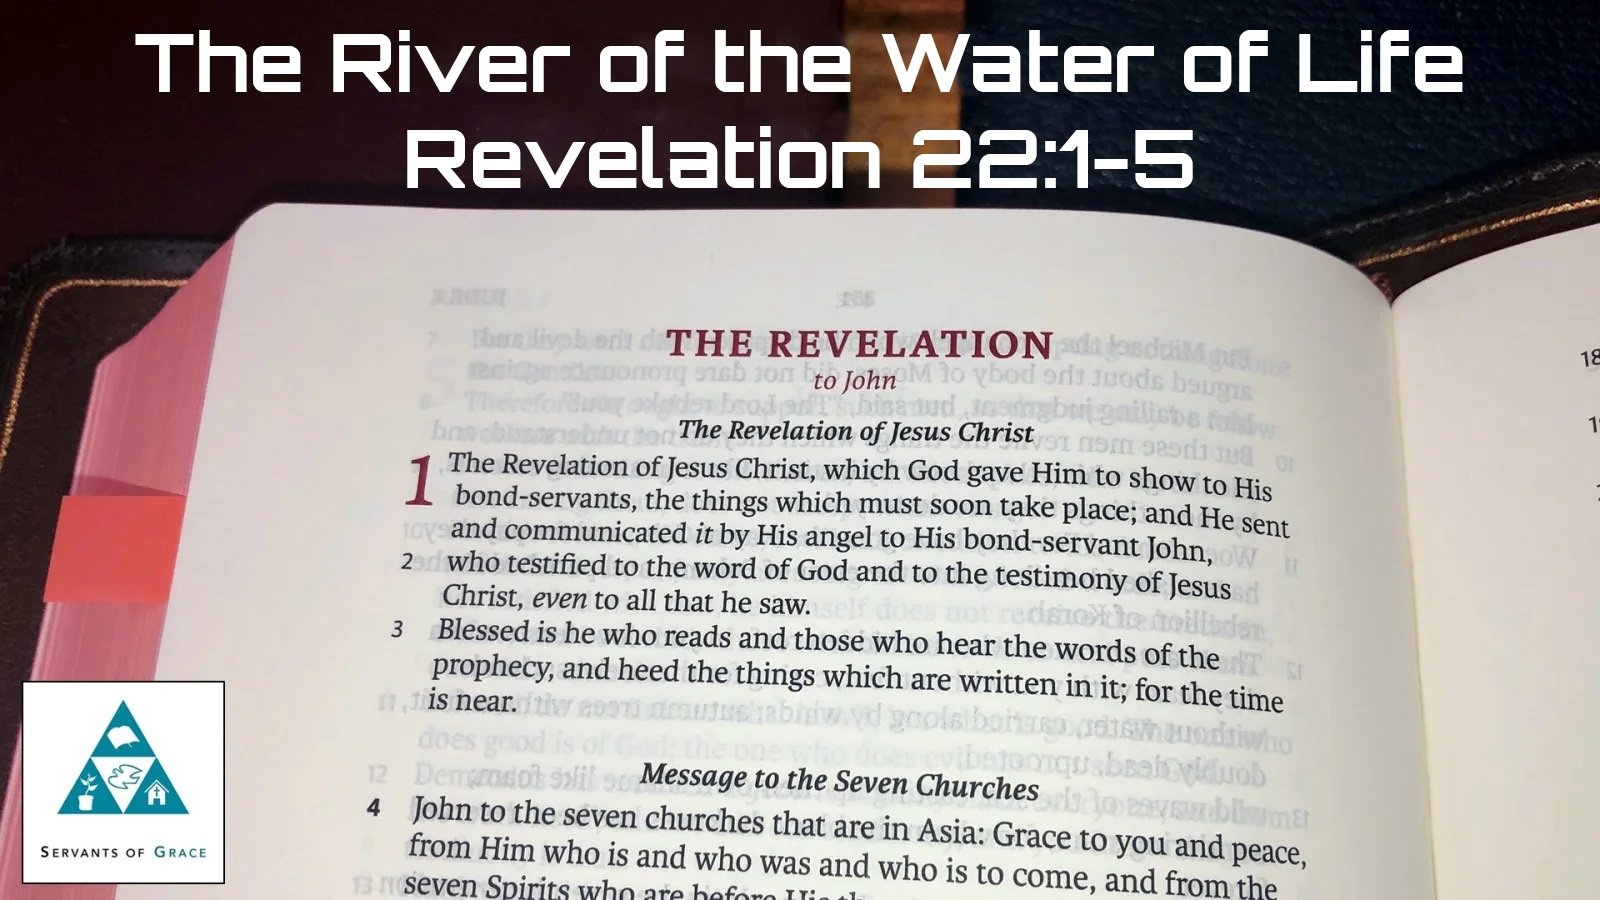 The River of the Water of Life 1